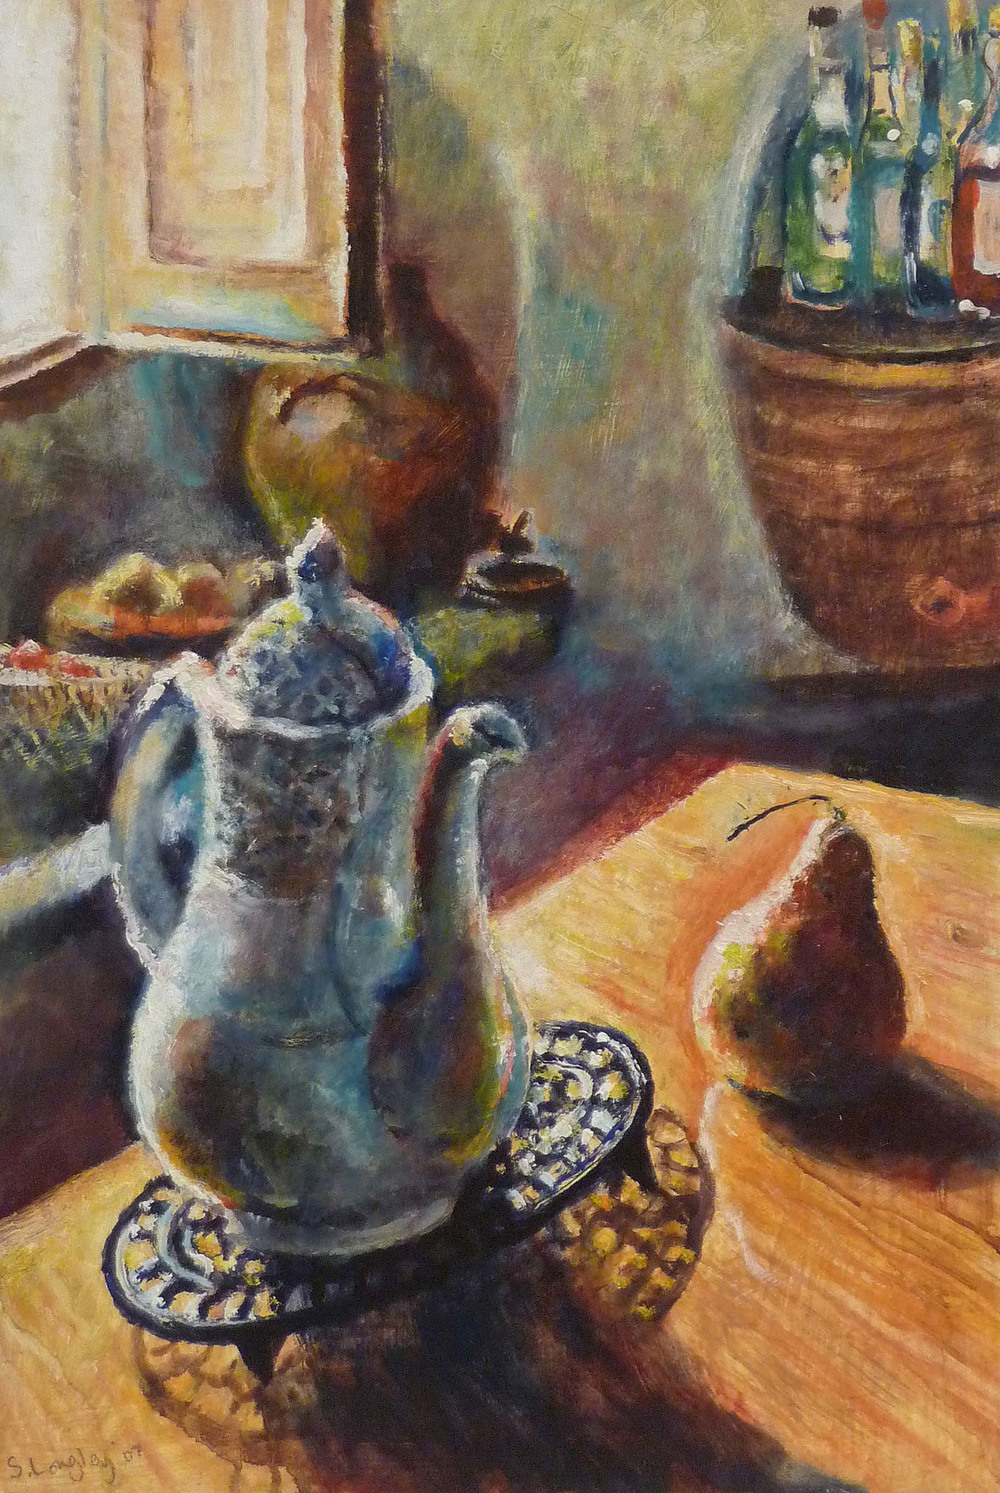 Sarah Longley_-_Coffee Pot and Pear_oil on board_45 x 31cm.jpg